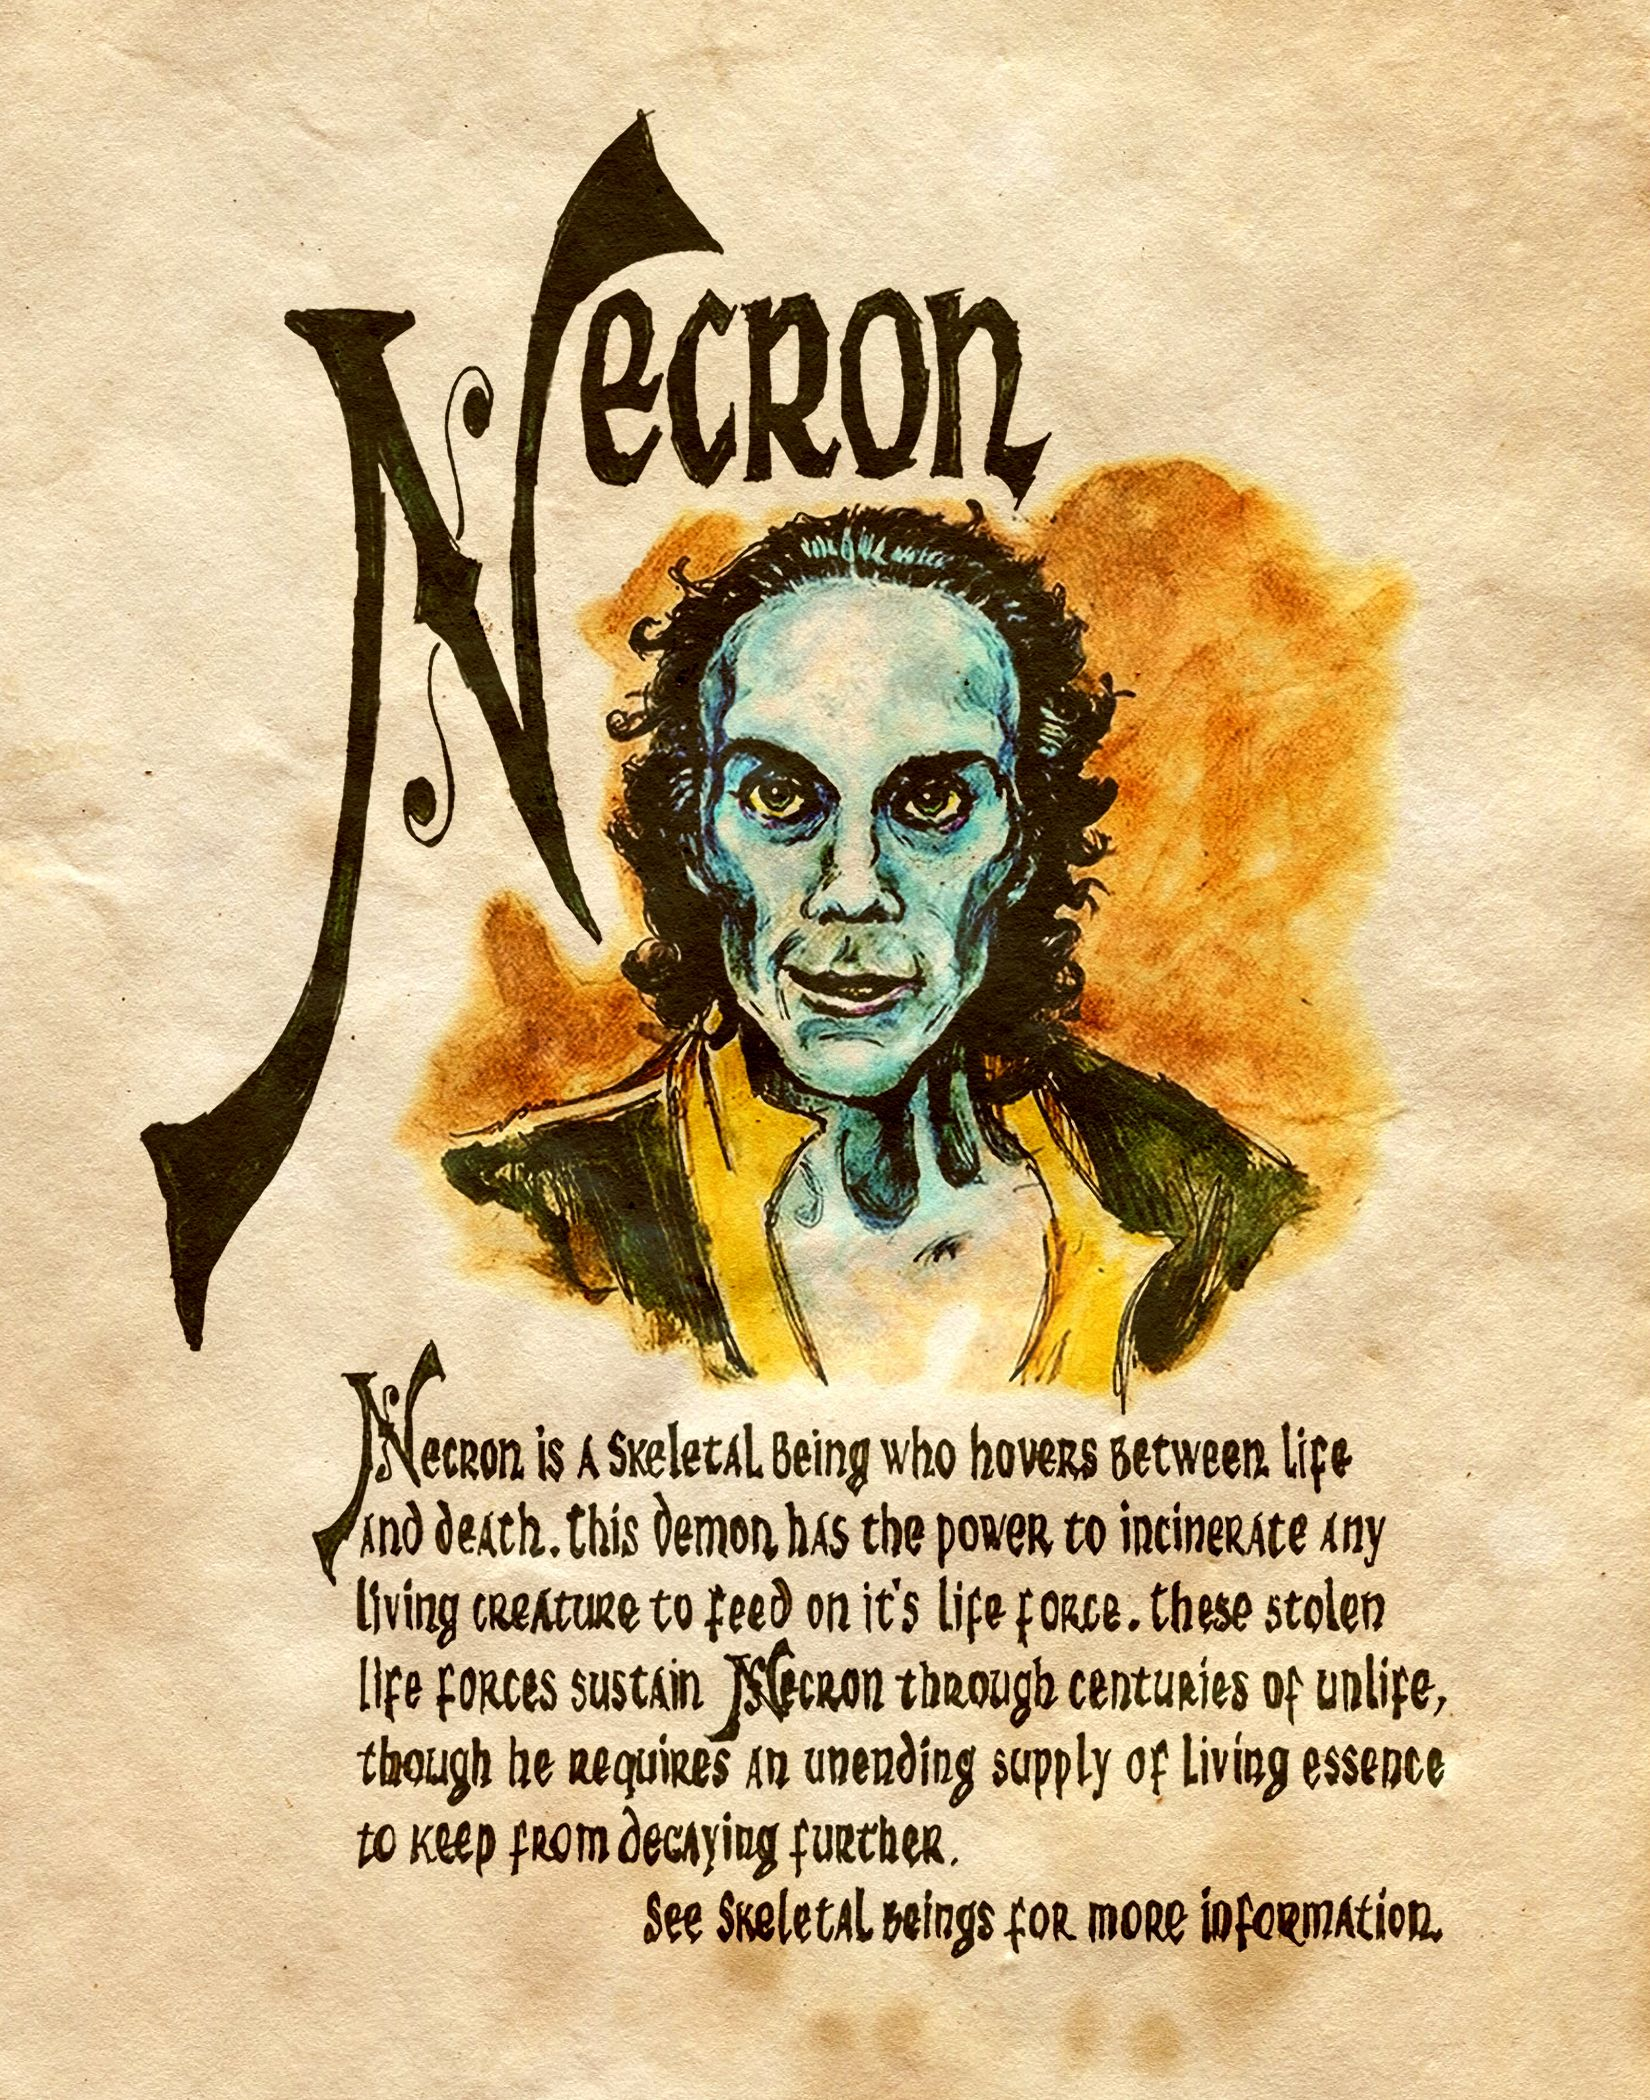 Necron charmed book of shadows charmed book of